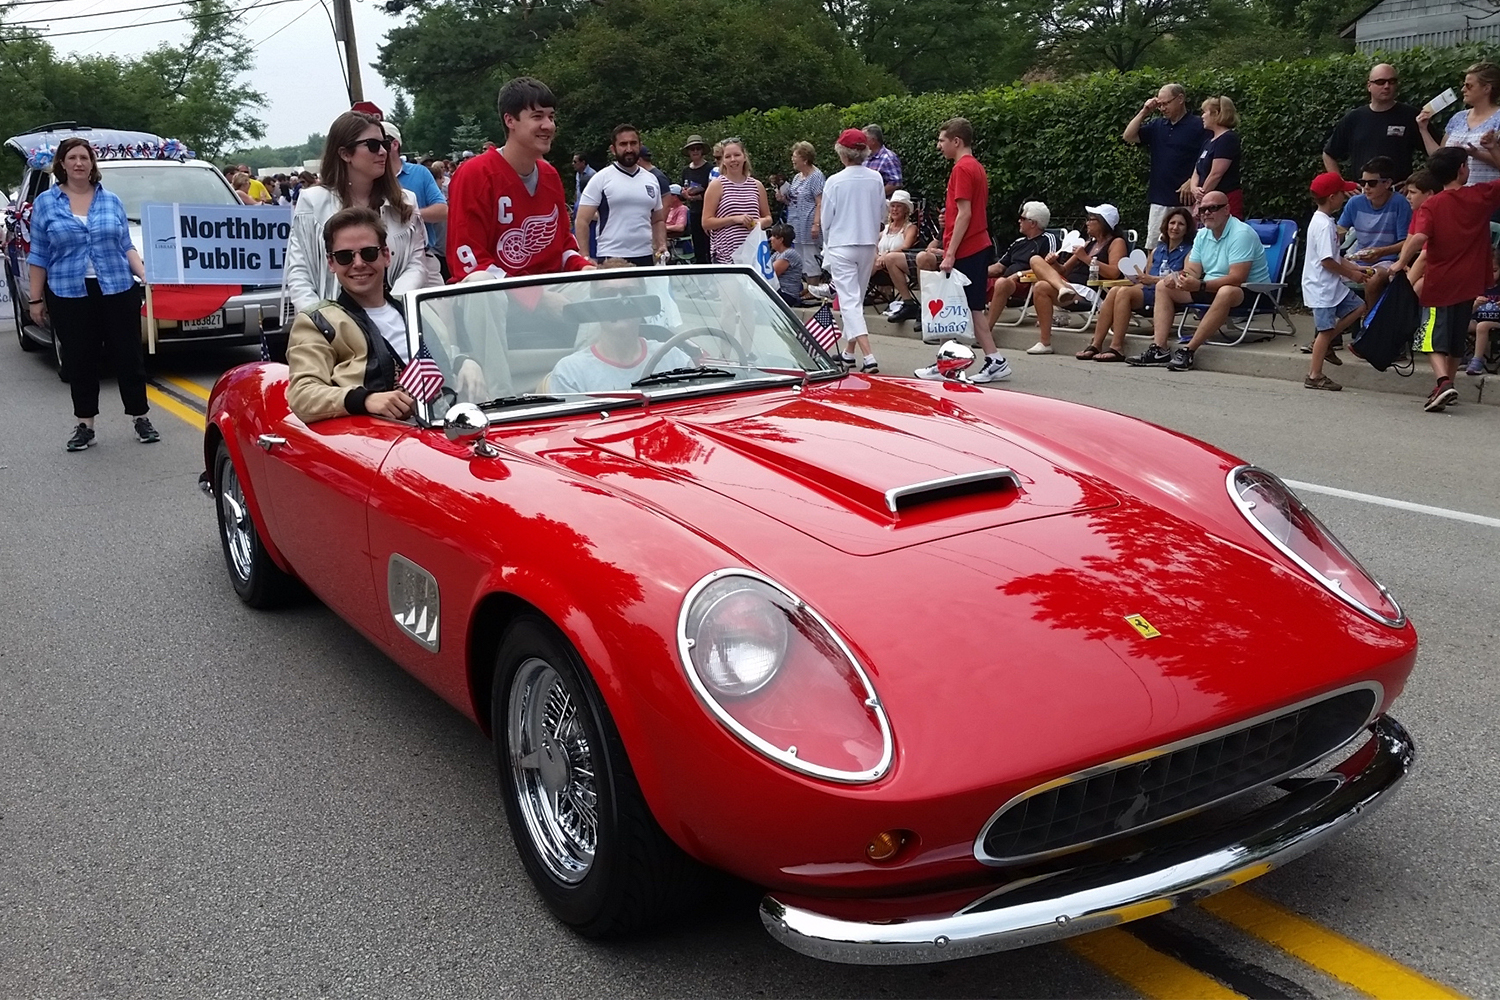 1961 Ferrari 250 GT California replica with people dressed like Ferris Bueller's Day Off characters